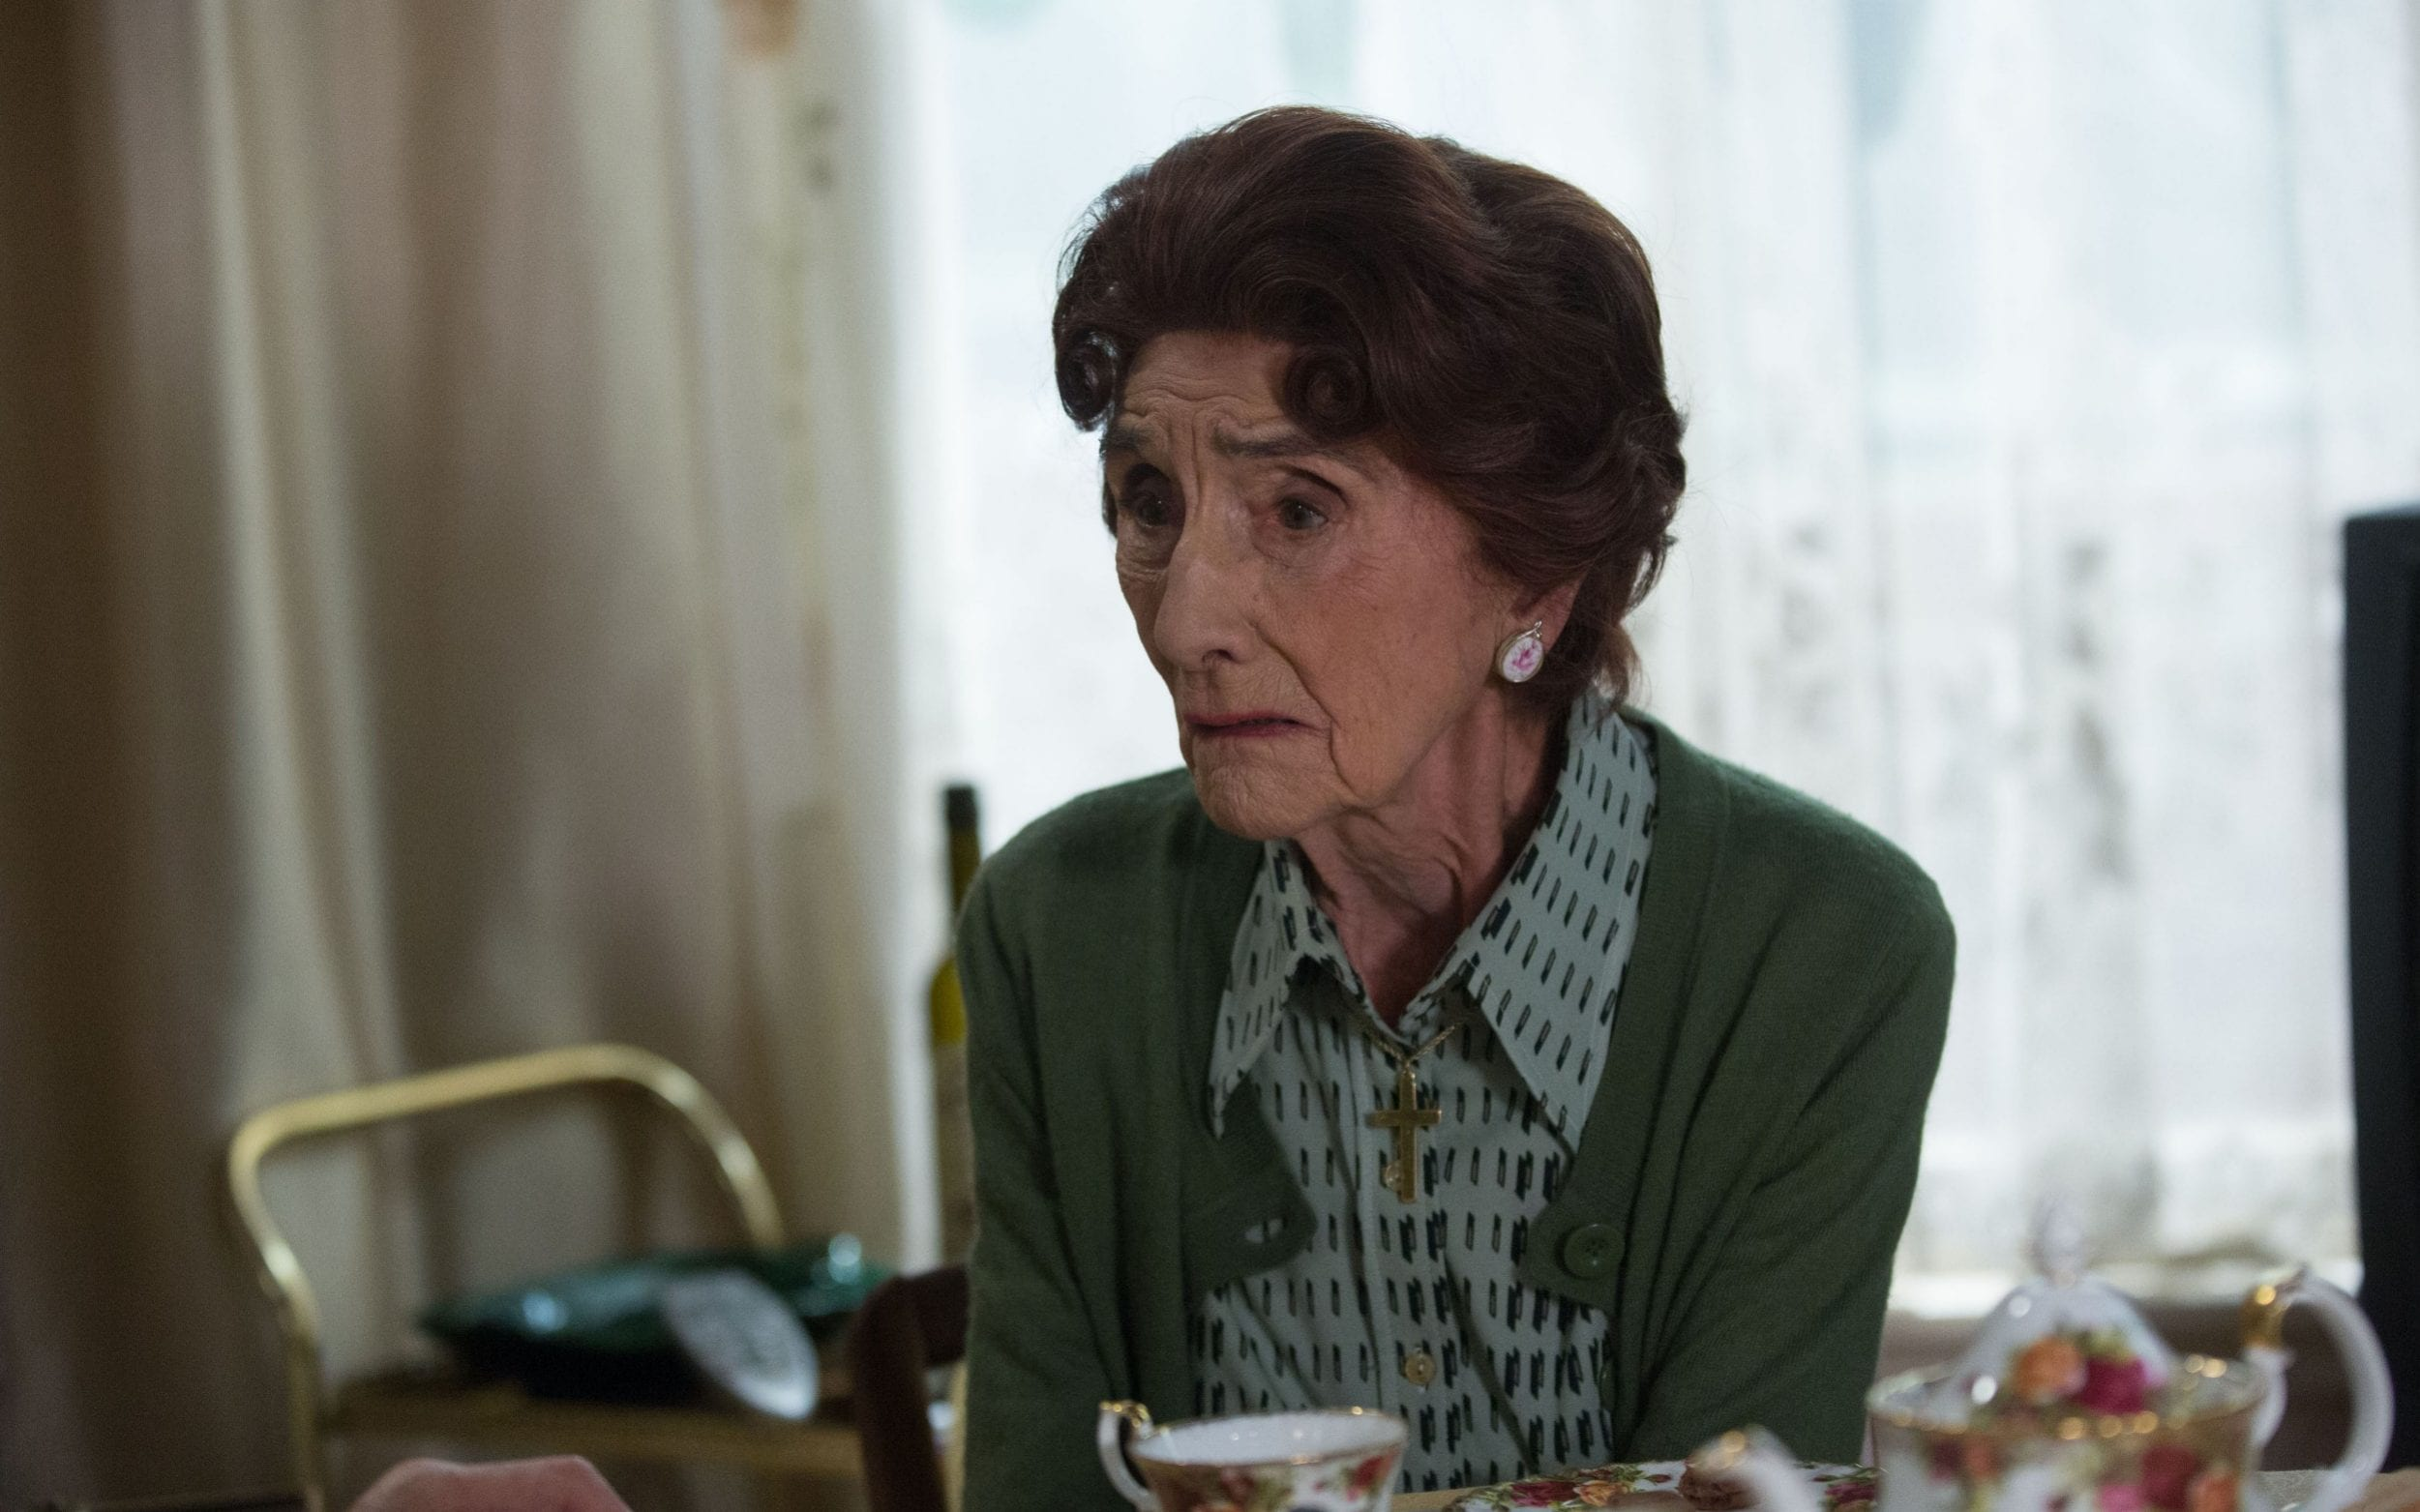 A much-loved mainstay of British camp, Dot Cotton will be missed on EastEnders and beyond